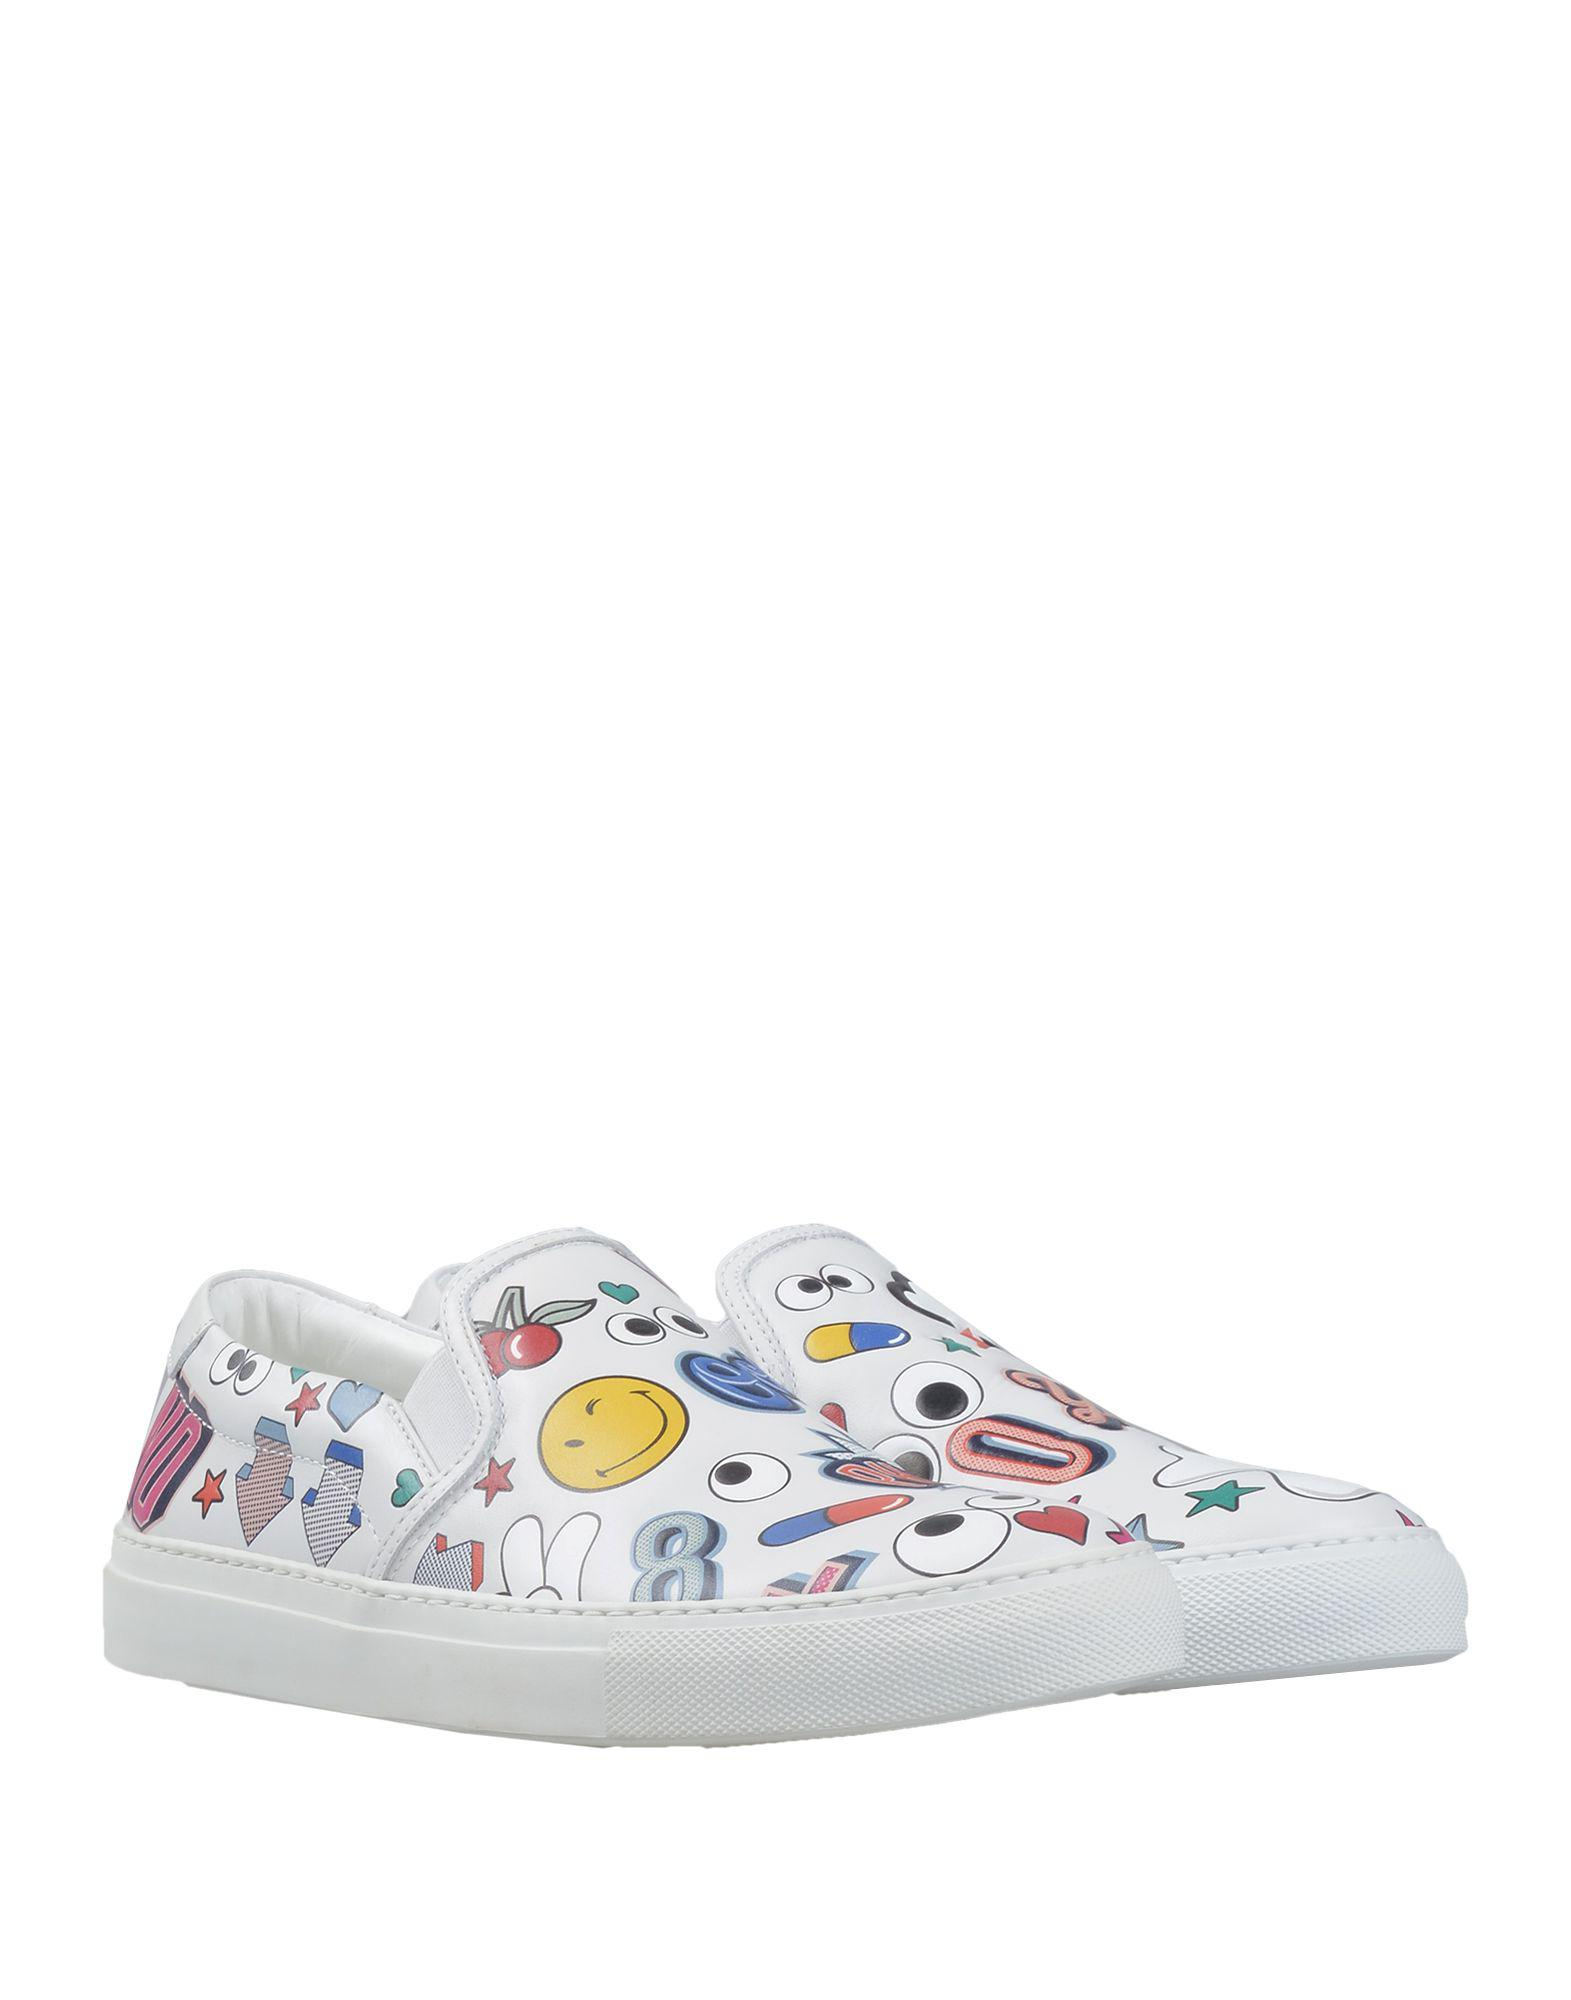 Anya Hindmarch All Over Stickers Leather Sneakers in White